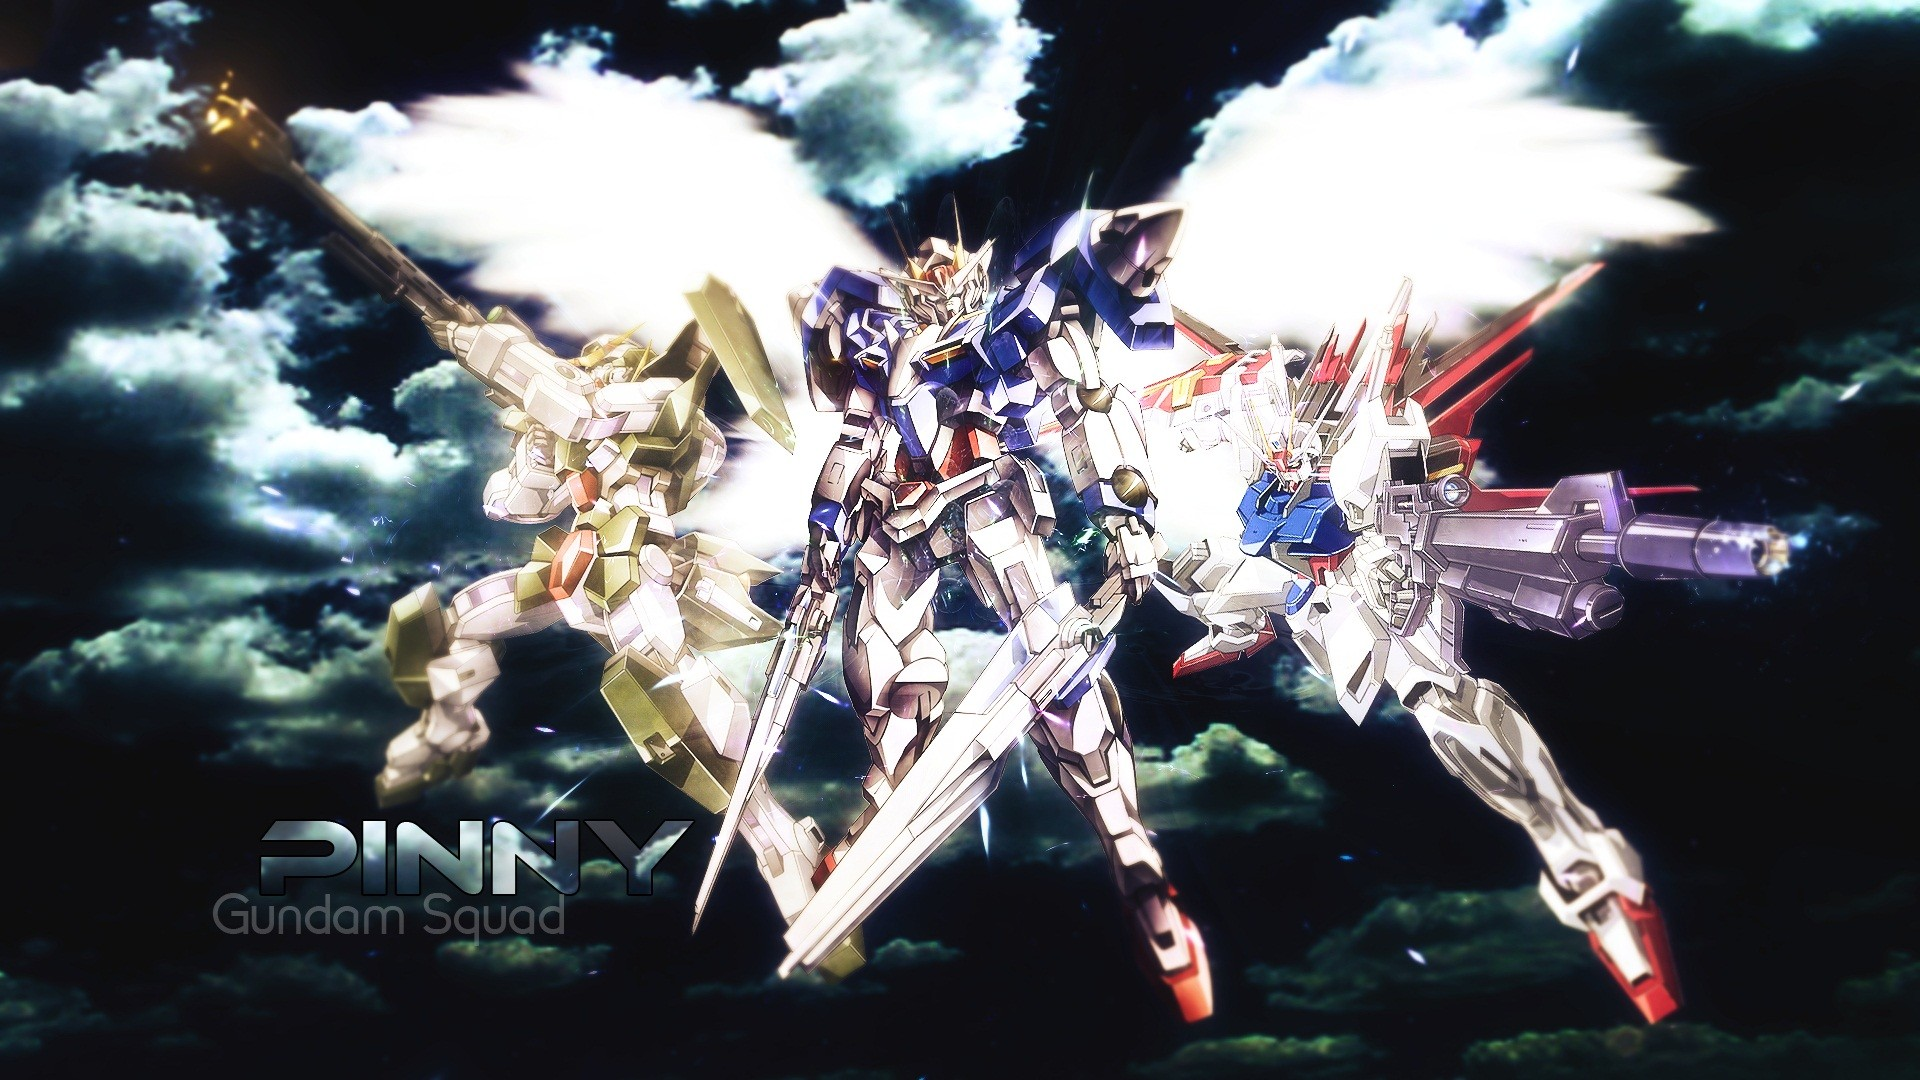 Tags: Anime, Mobile Suit Gundam Wing, HD Wallpaper, Fanmade Wallpaper,  Edited